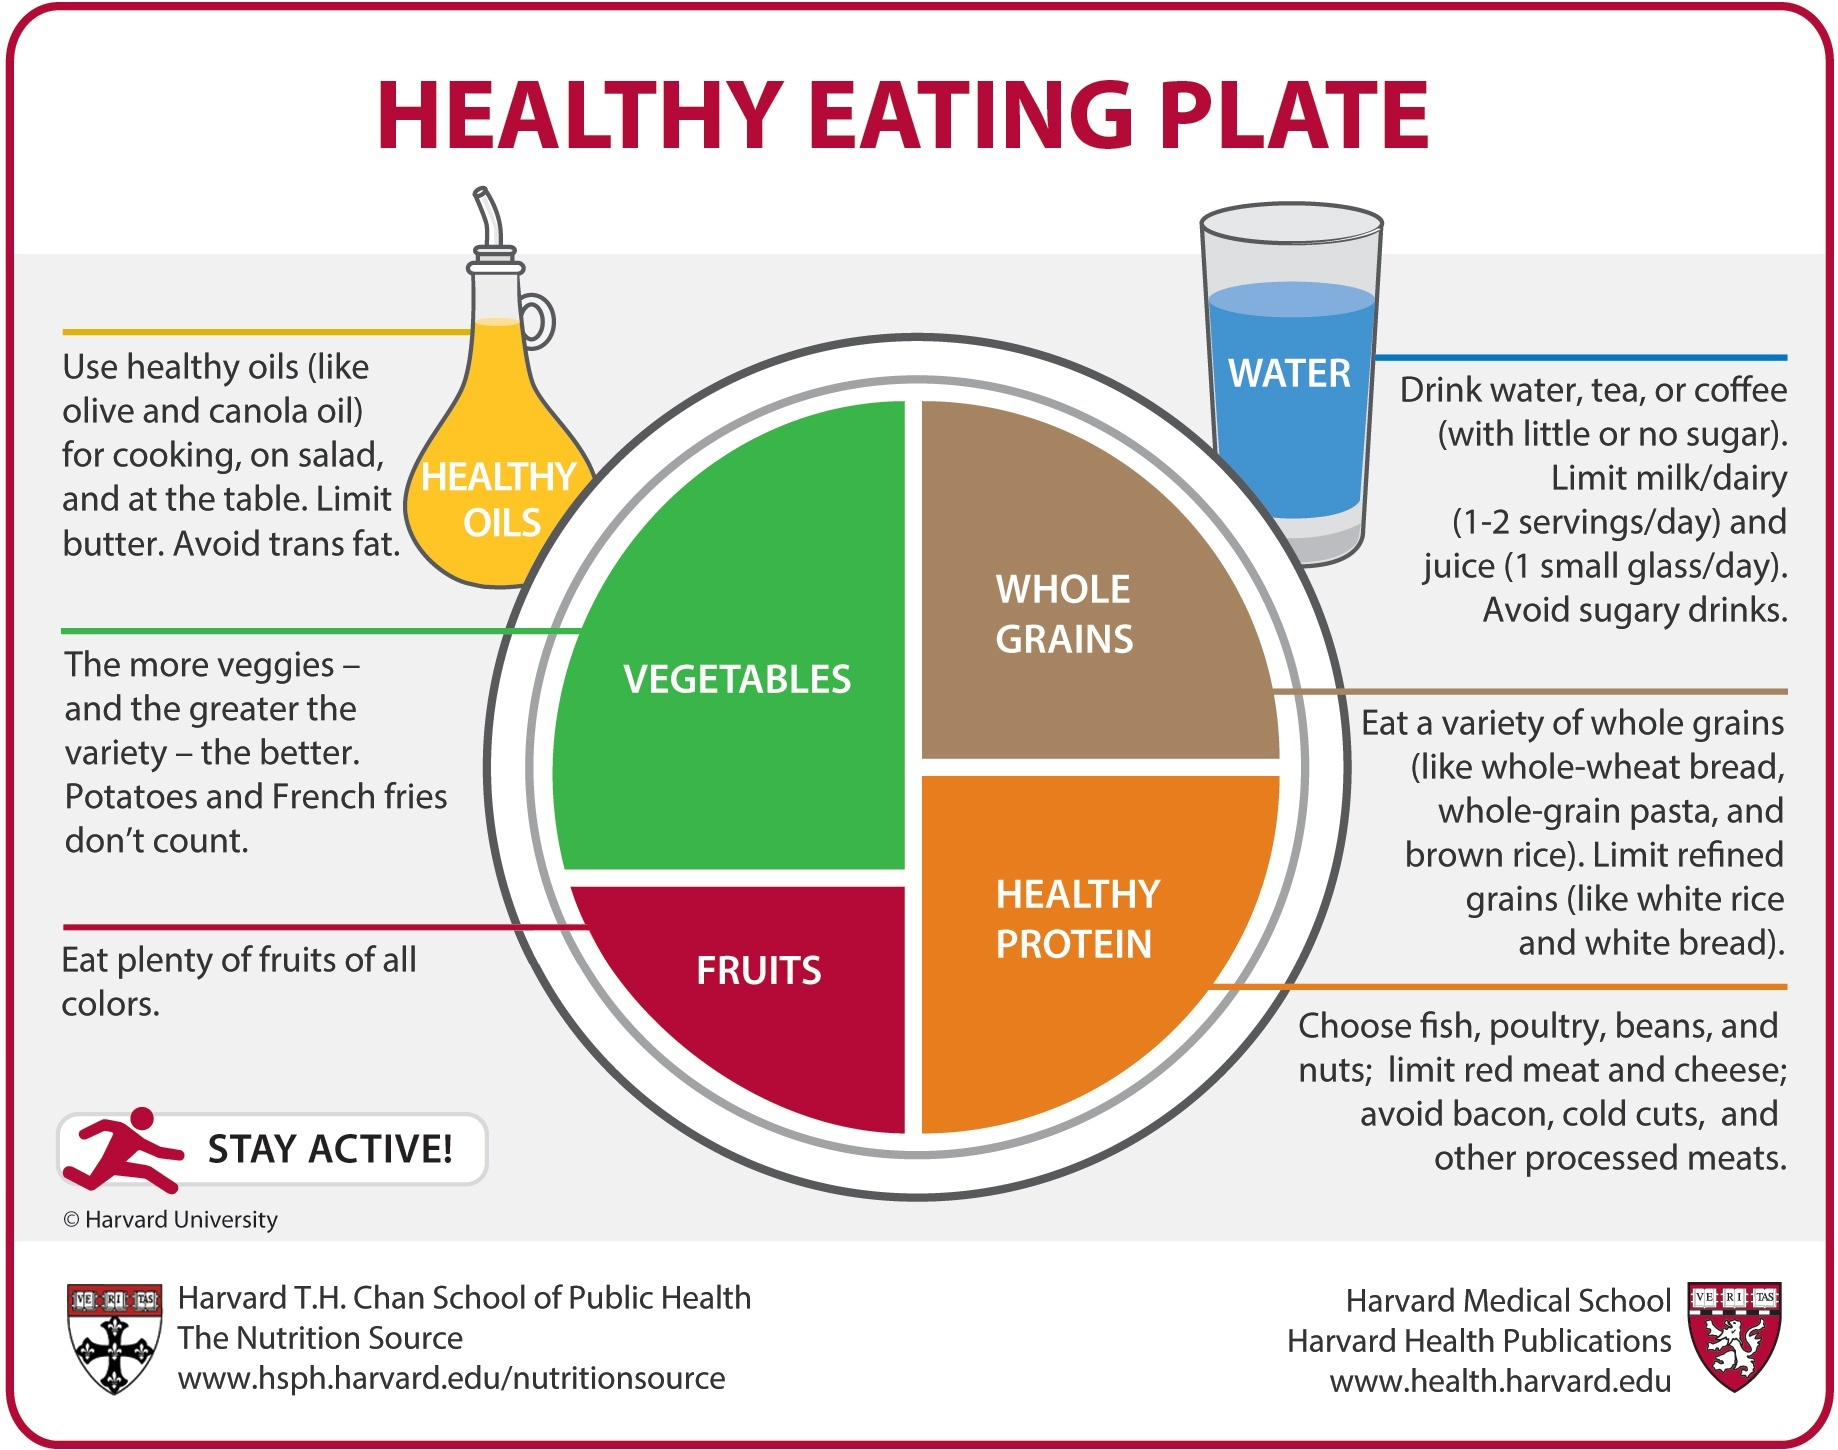 worksheet Healthy Eating Worksheets For High School the nutrition source harvard t h chan school of public health healthy eating plate